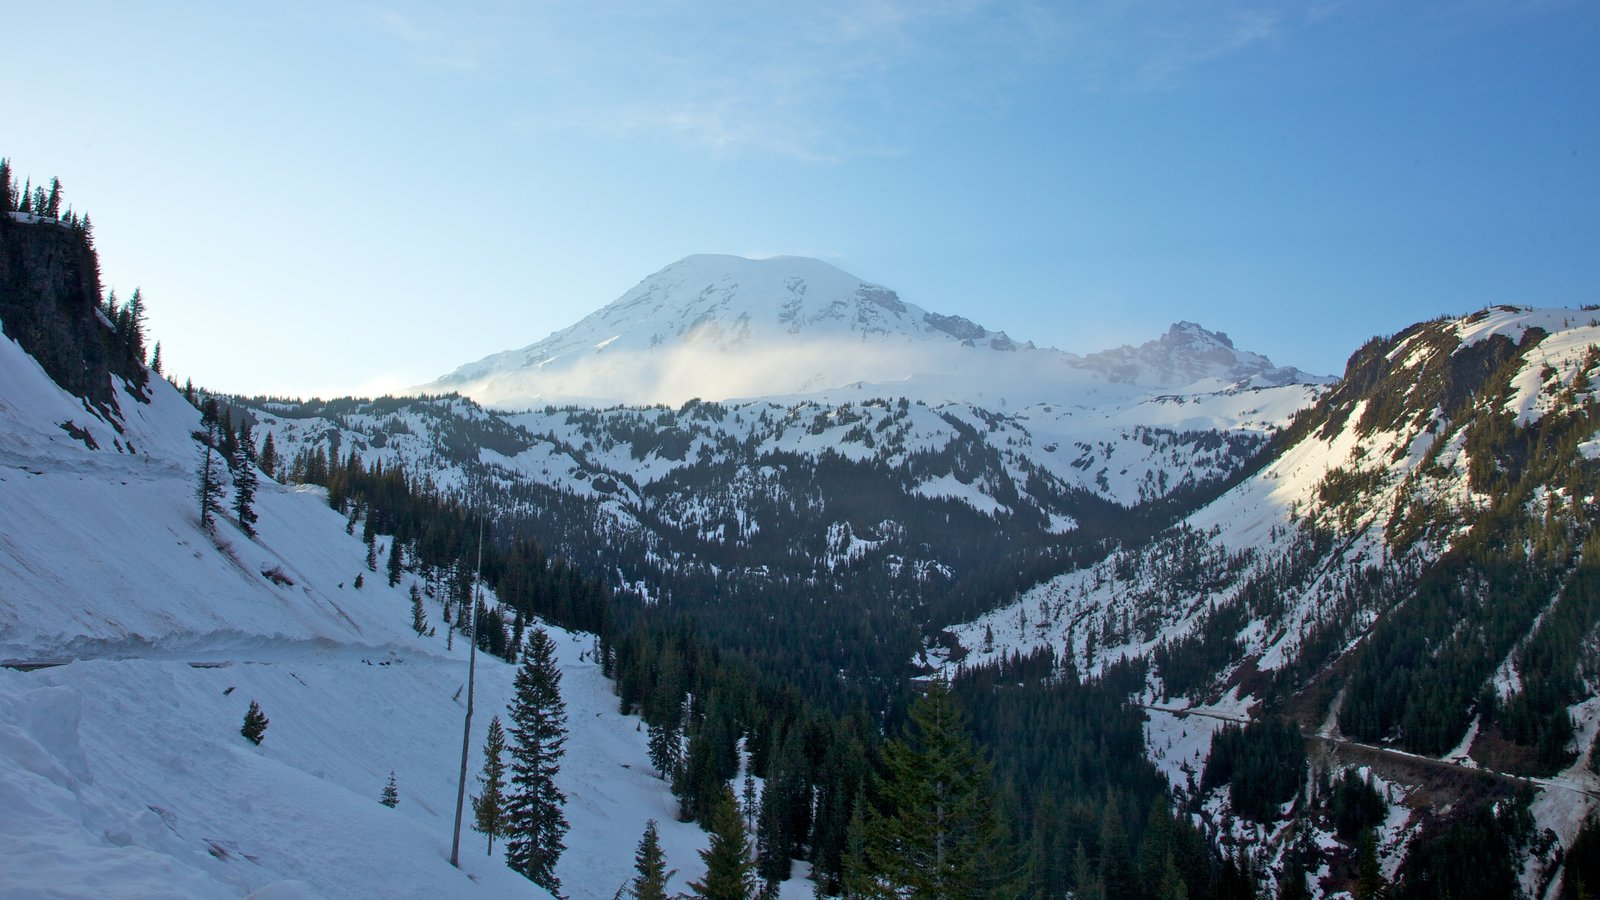 Mount Rainier National Park featuring snow, mountains and landscape views